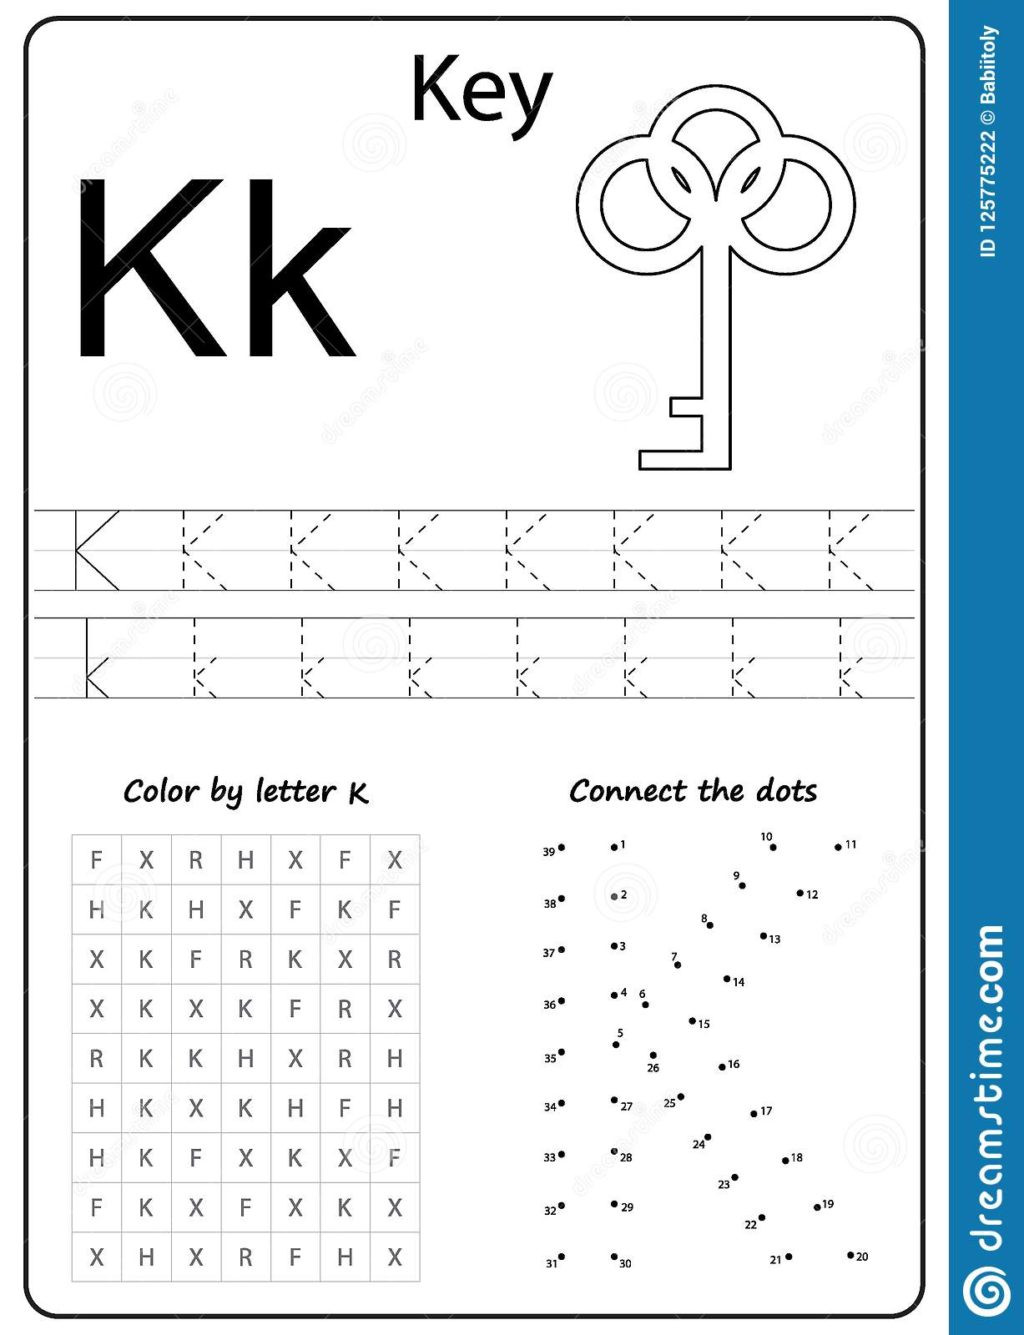 Letter K Tracing Worksheets Preschool Worksheet Kheets for Preschool Free Printable toddlers